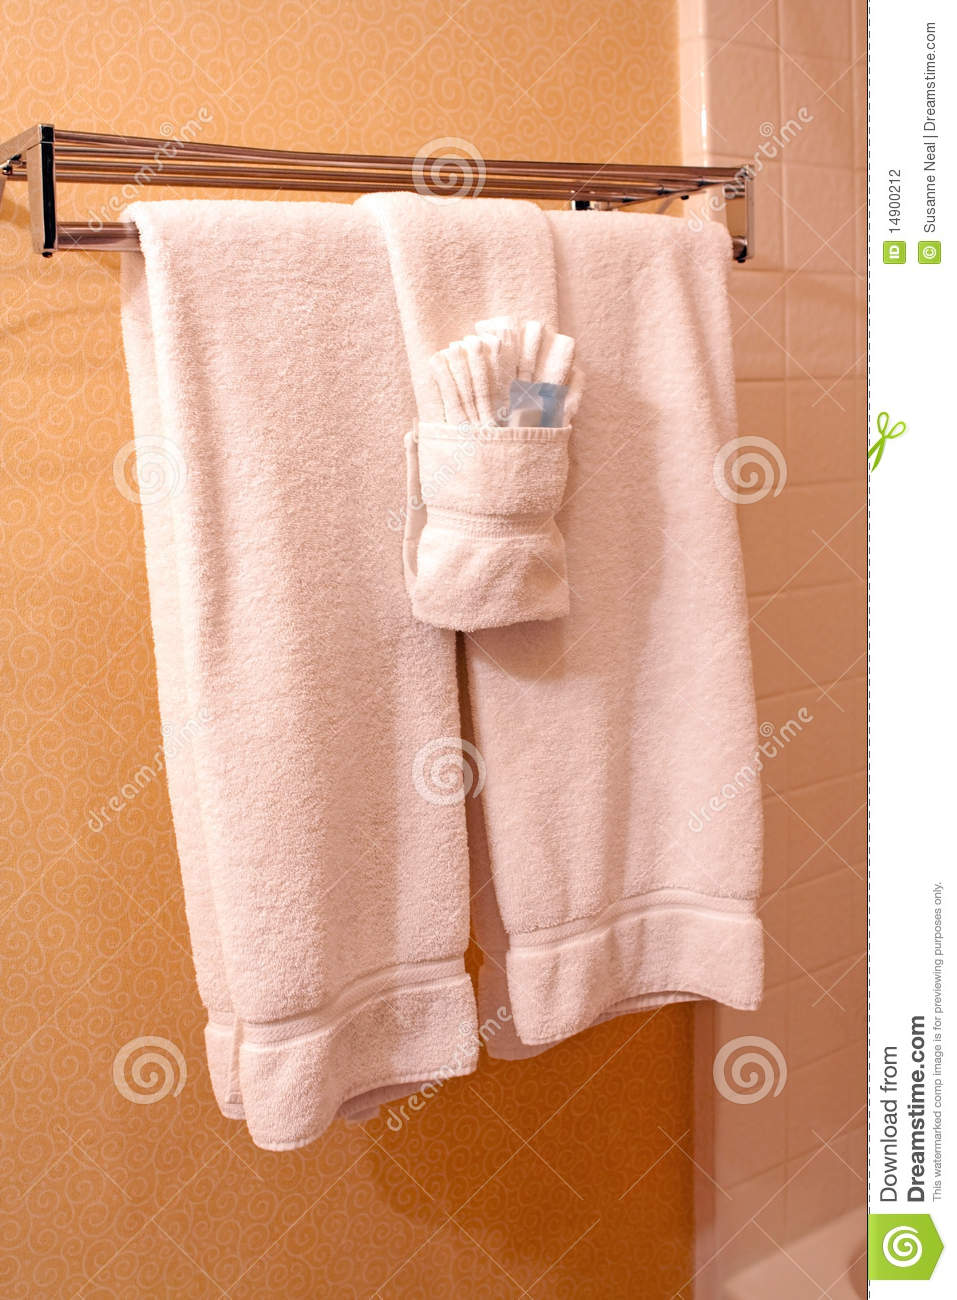 How to hang towels in how to hang towels in a bathroom for How to fold decorative bathroom towels